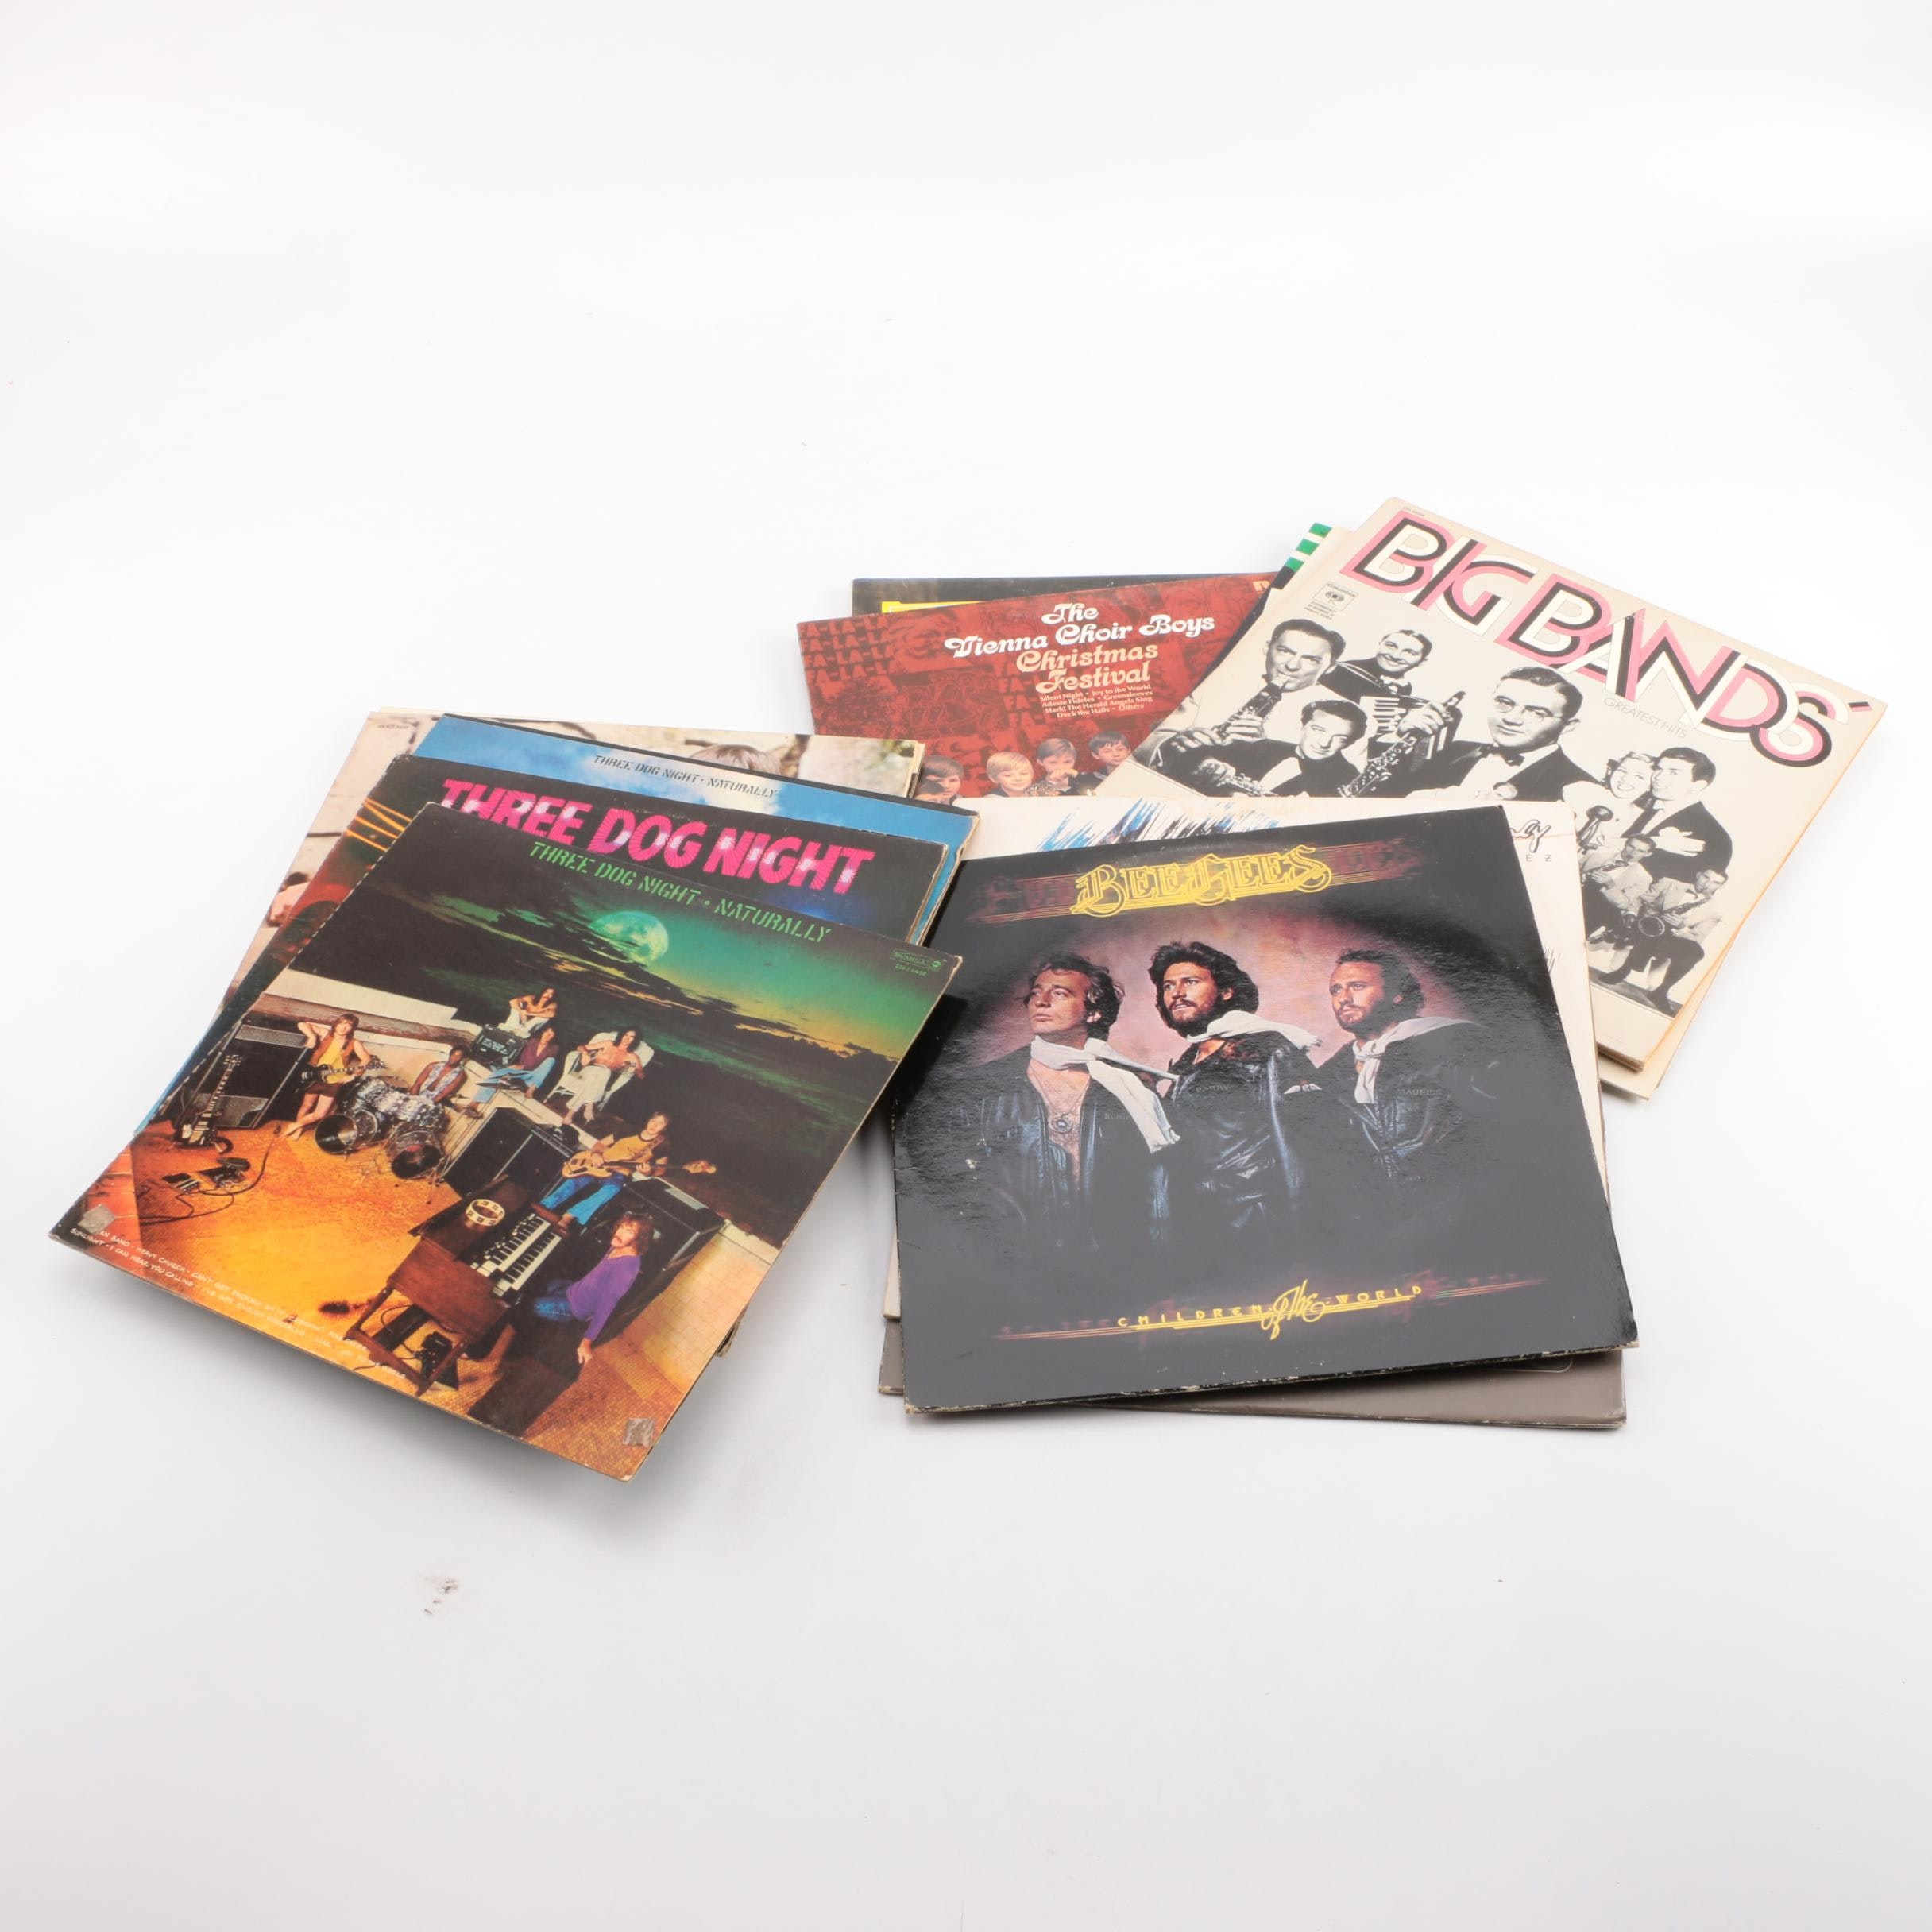 Three Dog Night, Jackson Browne, Burl Ives and Other Rock/Pop and Holiday LPs